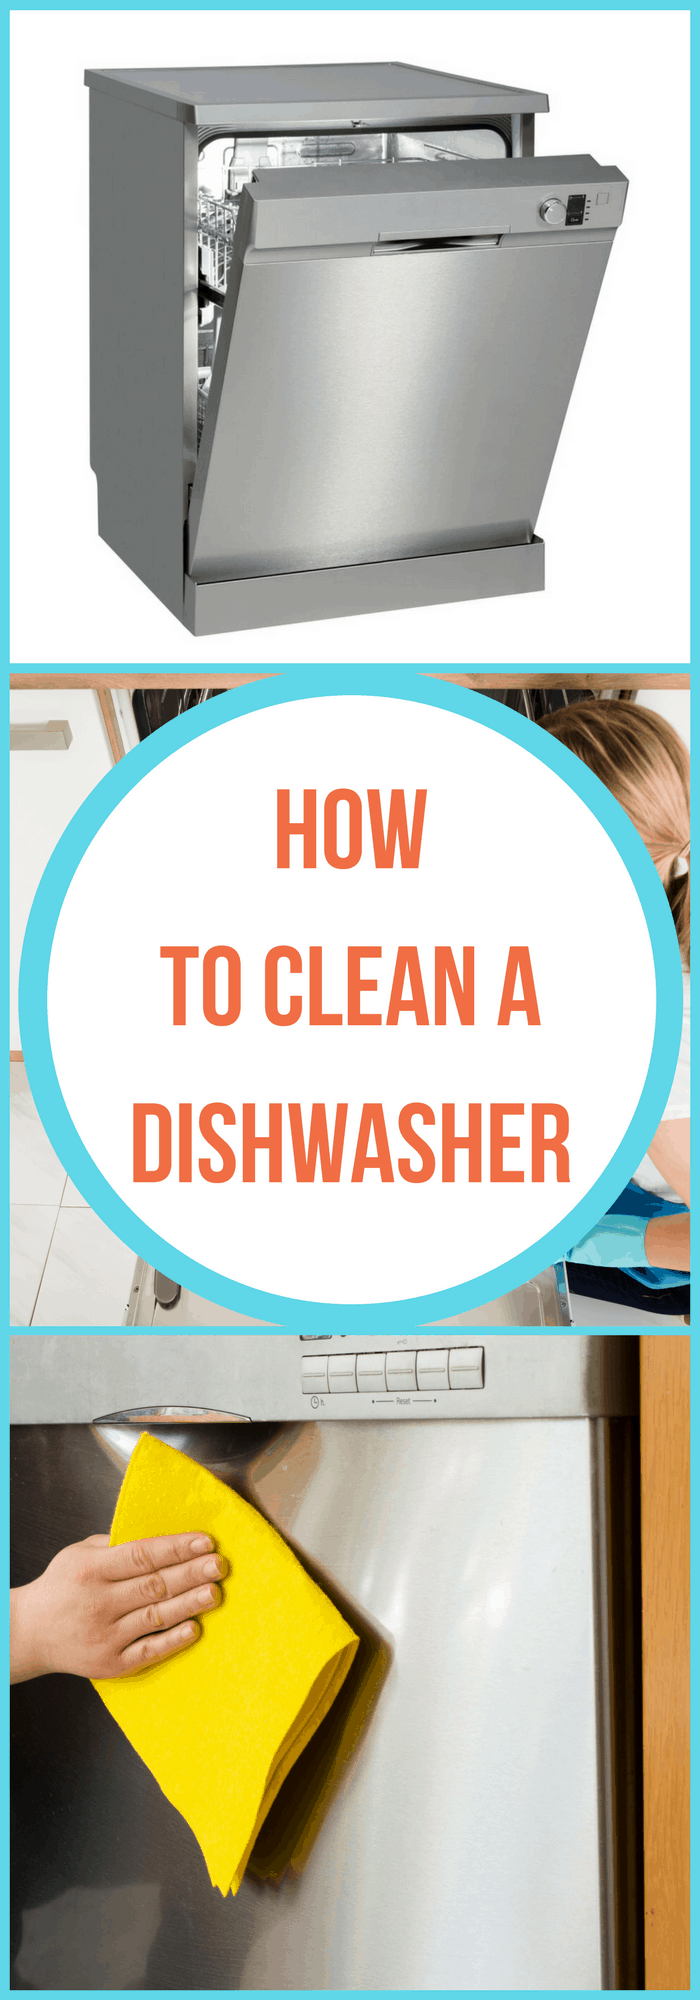 Cleaning--How to Clean A Dishwasher